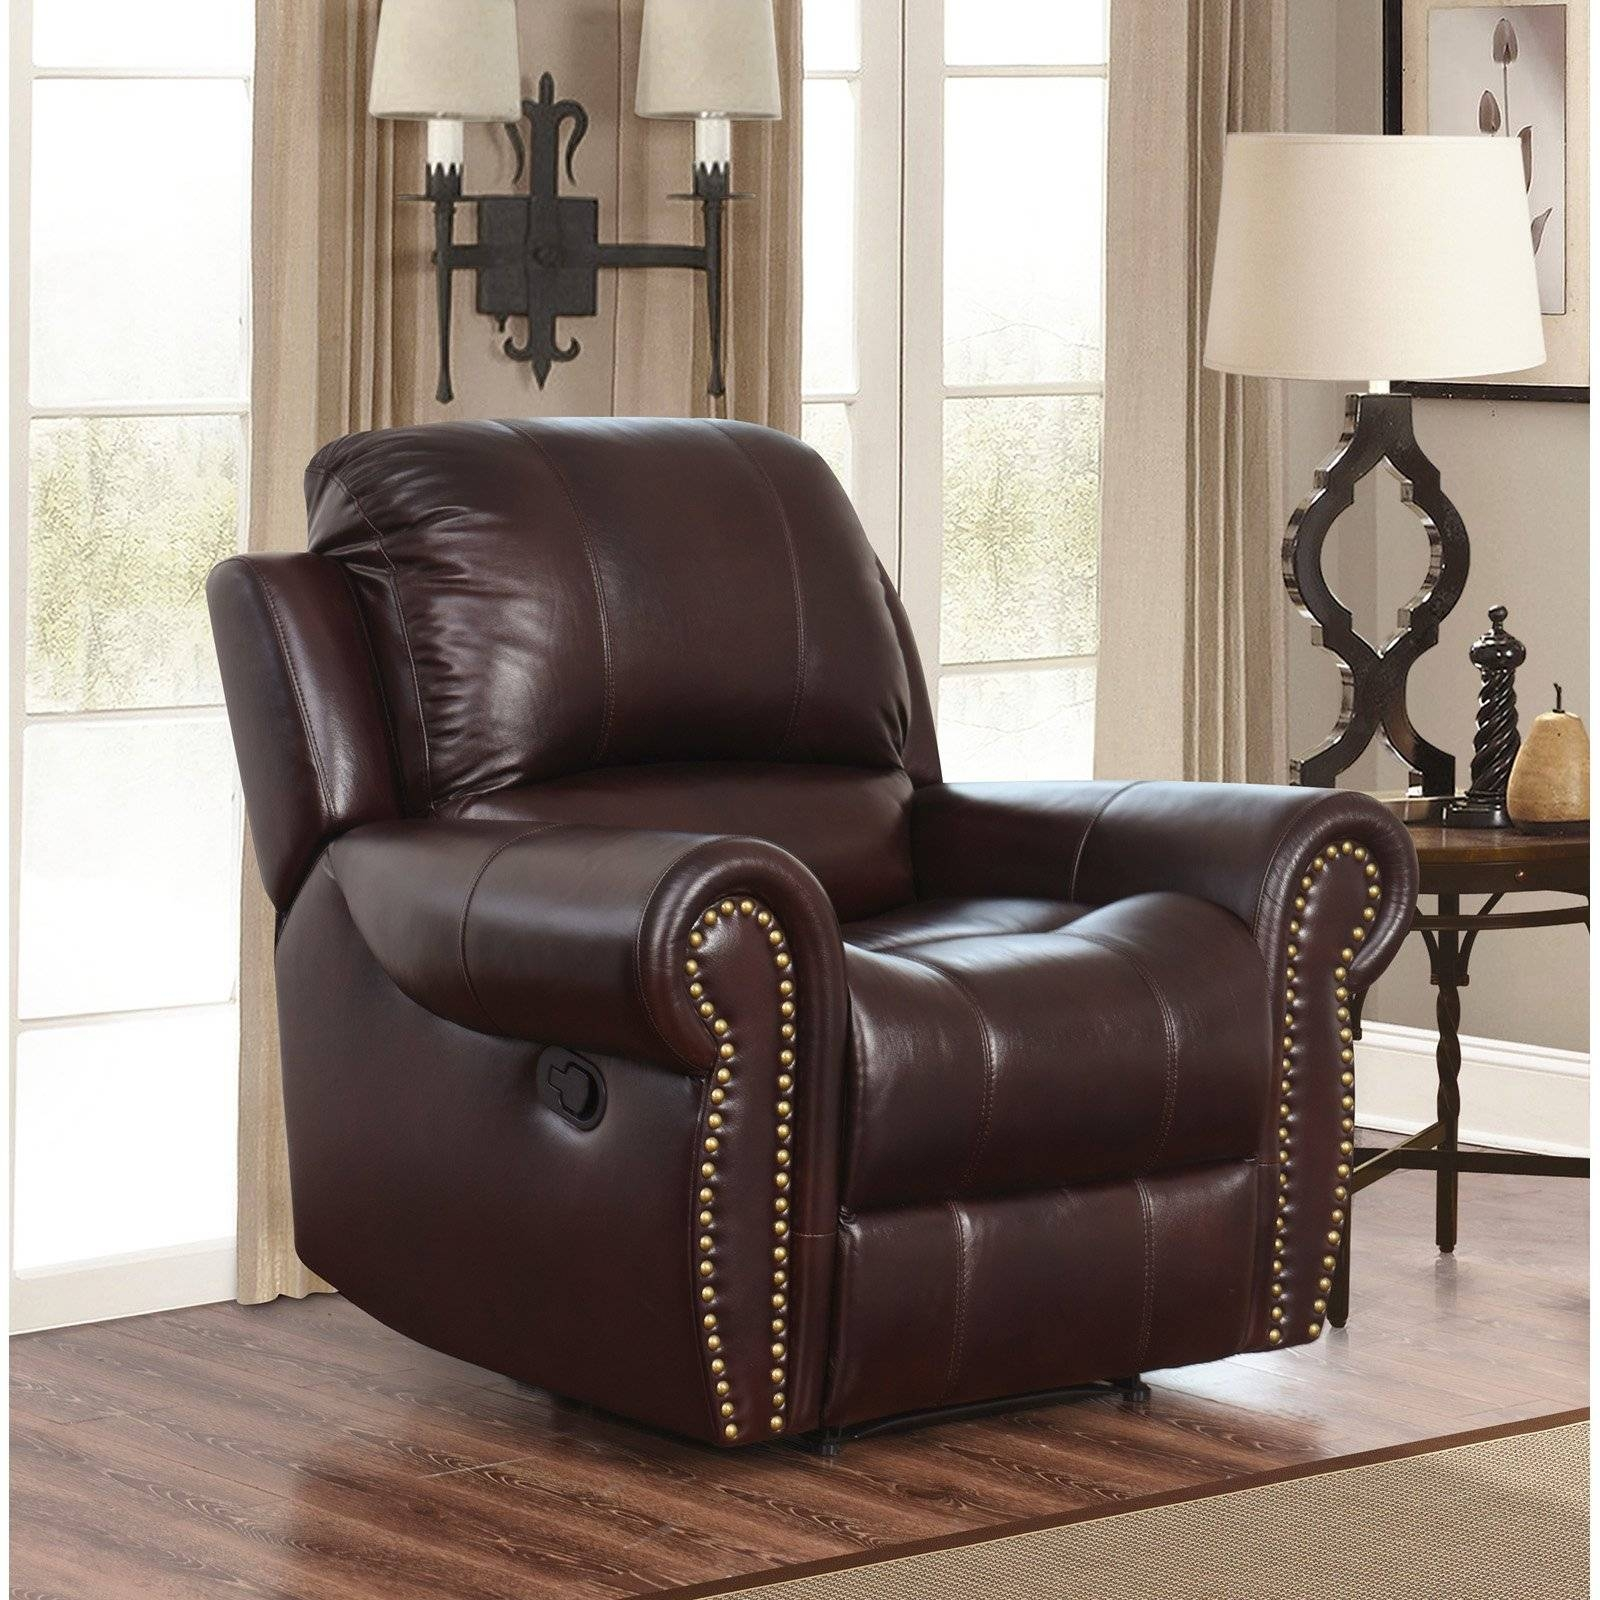 Abbyson Hogan Italian Leather Reclining Chair With Nailheads Regarding Abbyson Recliners (View 4 of 15)